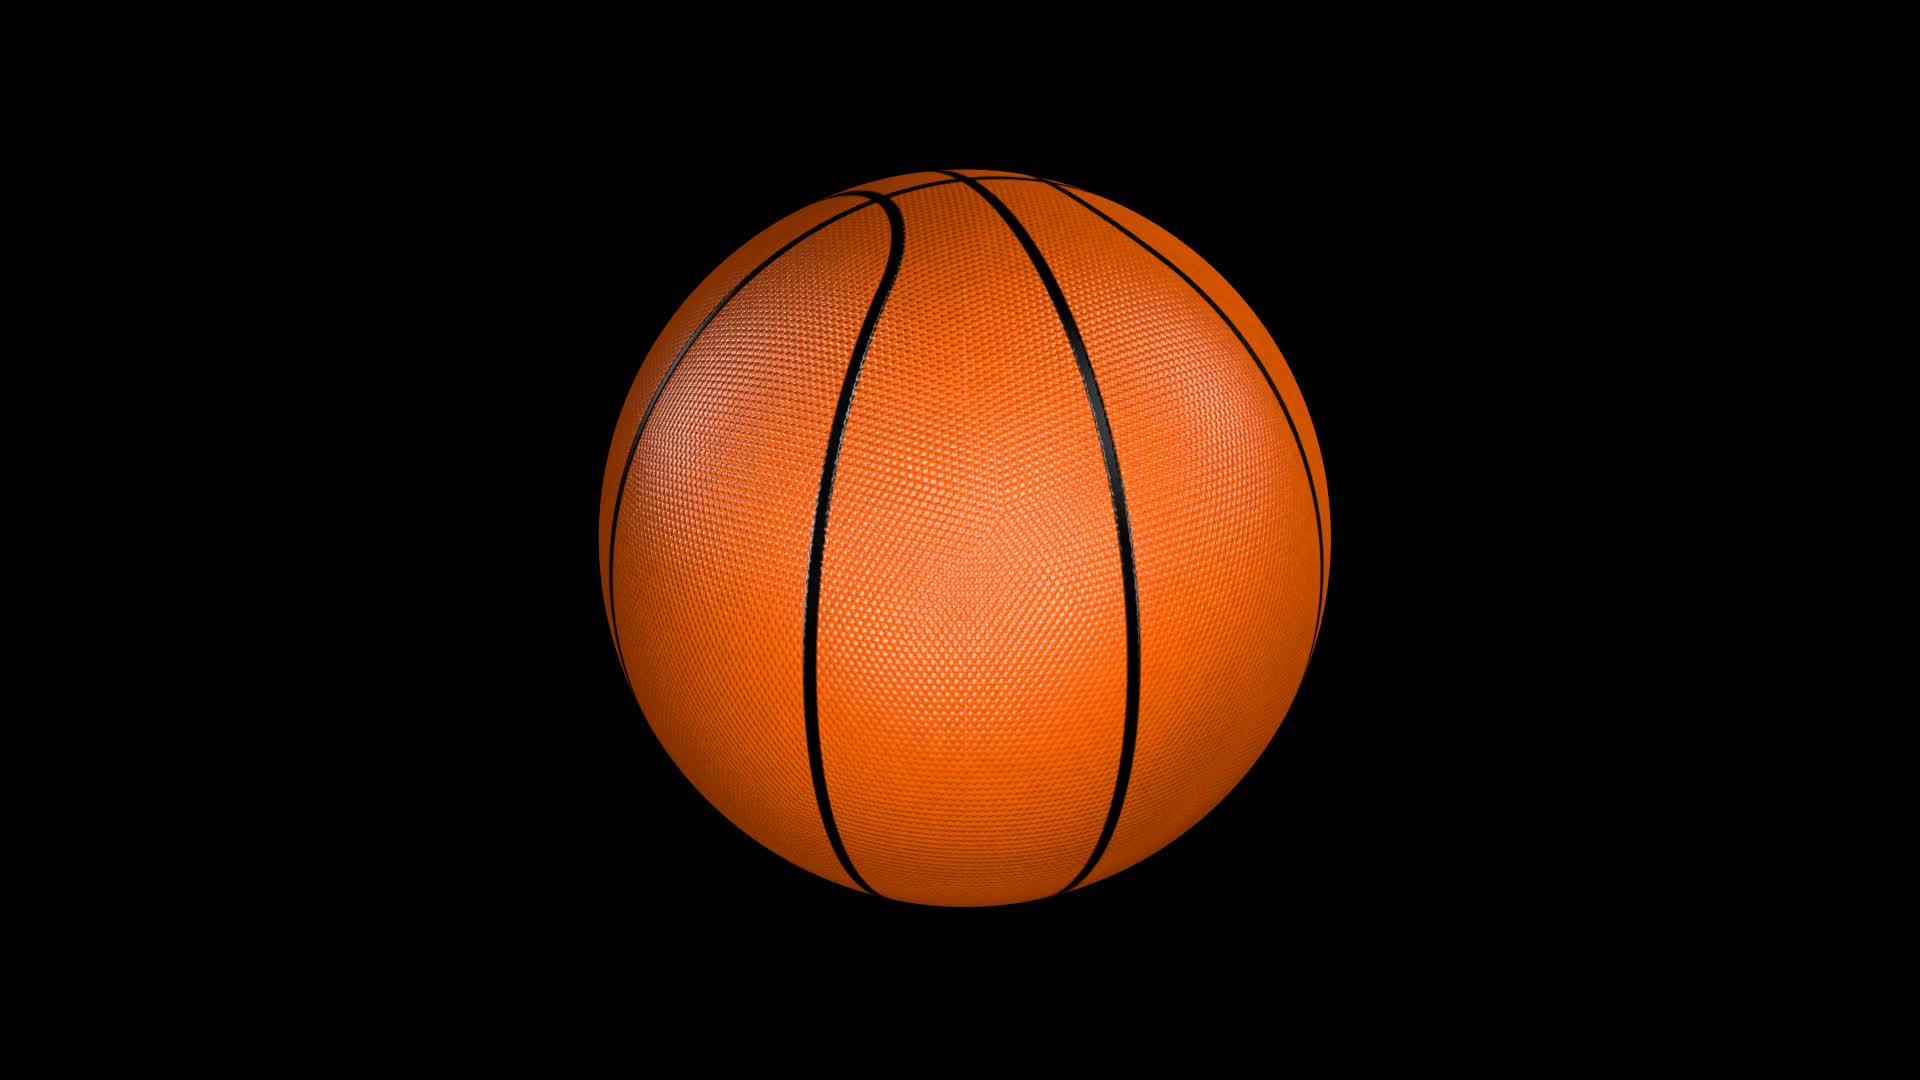 Basketball Spin On Black Background Stock Video 11897259 ...